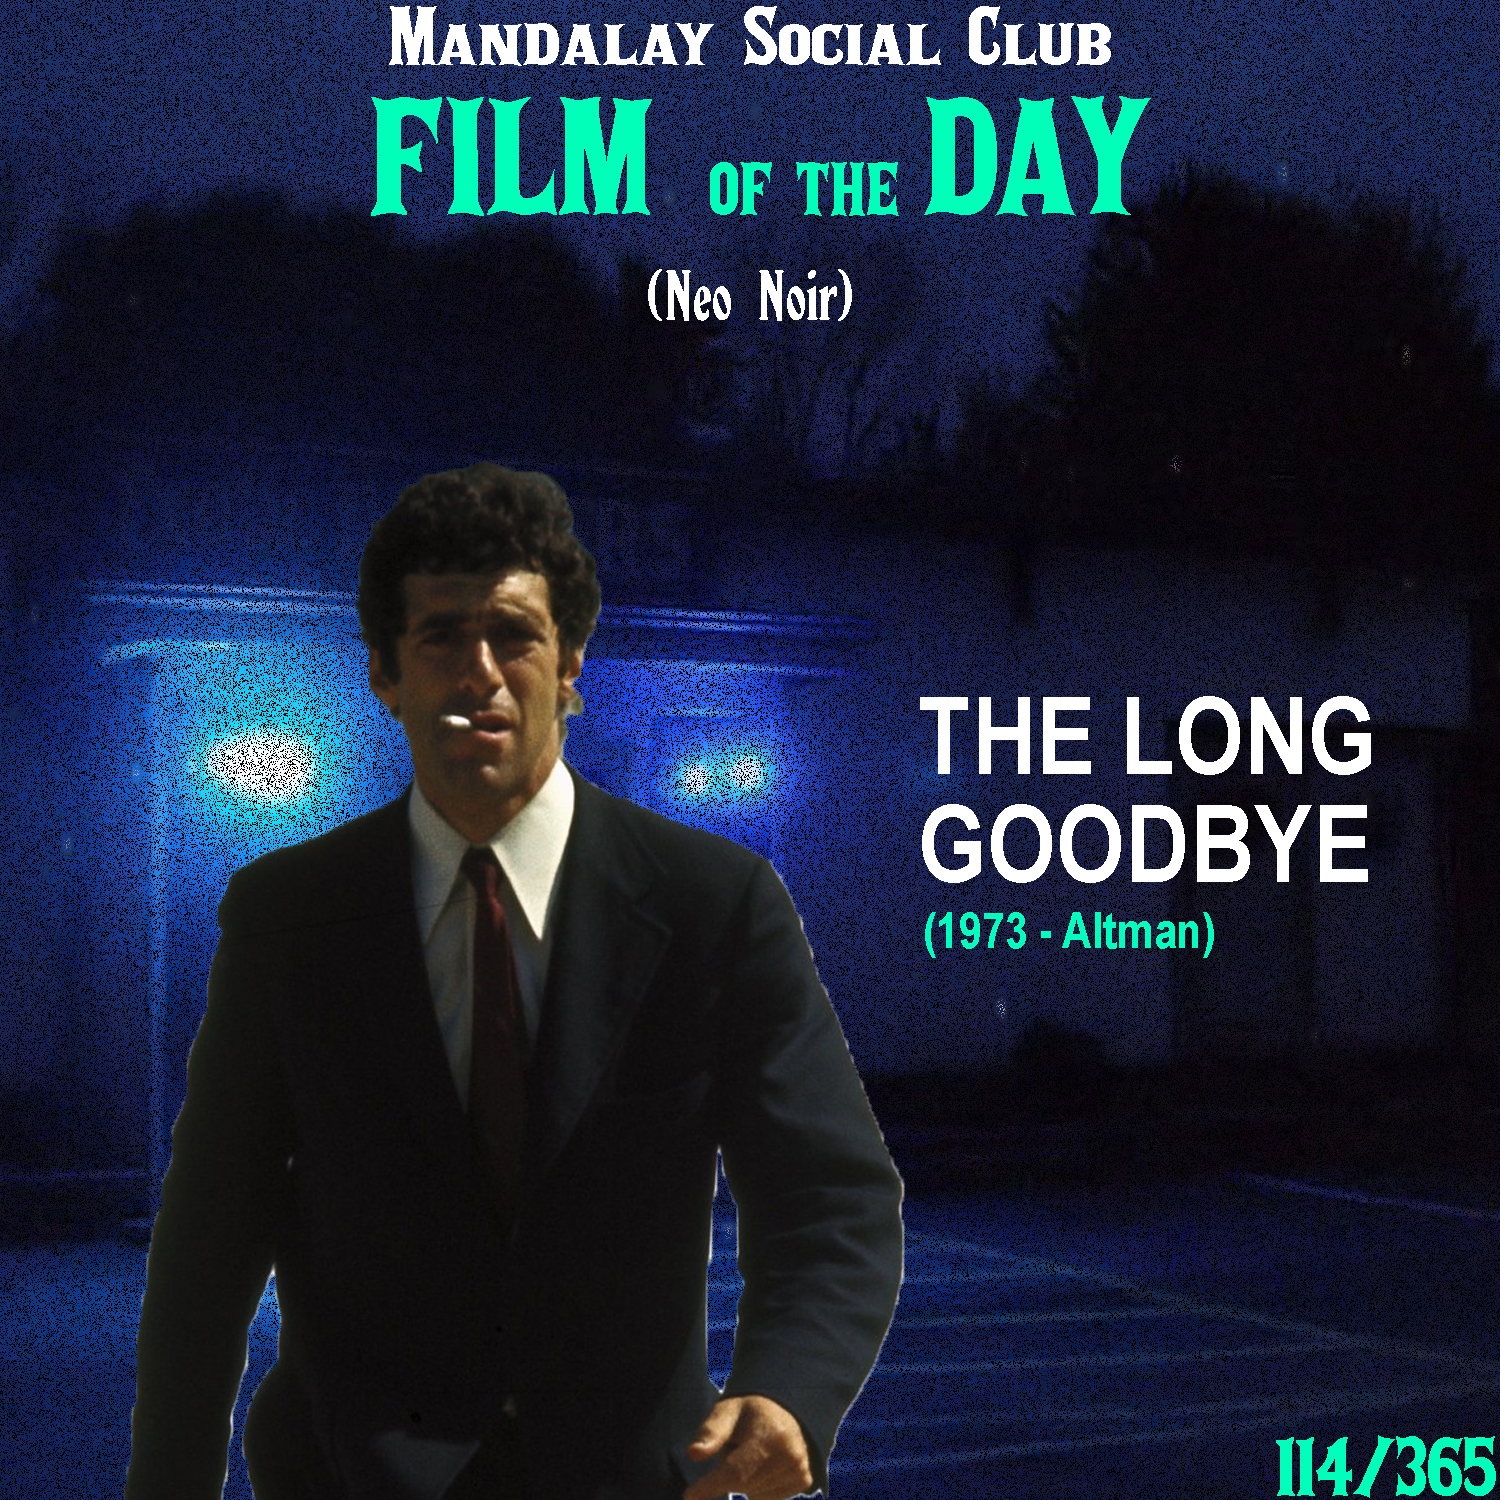 THE LONG GOODBYE     (dir. Robert Altman)   Robert Altman's take on Raymond Chandler's classic crime novel  The Long Goodbye  makes for one of the most exciting and mysterious films to come out of the 1970s!  Elliott Gould (yes, Monica and Ross' dad in Friends) tries his hand at playing the legendary PI, Philip Marlowe. This time, it's set in 1970s California where Marlowe finds himself entangled in a mysterious plot after he takes his friend Terry down Tijuana. When he comes back to LA, he finds out that Terry's wife has been murdered and Terry is the prime suspect. After hearing reports of Terry committing suicide in Mexico, Marlowe is let free and is then hired by a woman to find her alcoholic husband. This woman, however seems to have a shady past with Terry and his wife…   The Long Goodbye  displays a man who's inadvertently been drawn into a world of self-obsession. The world that Marlowe lives in for the nearly two hours of the film is a world of pure narcissism and disregard for human life. It's a world where people are so self-absorbed in themselves that they have no clue the trauma they cause other people. 46 years later and it's still an accurate warning sign of what could be, or more accurately, what already is.    5/5     WATCH: Putlocker / iTunes